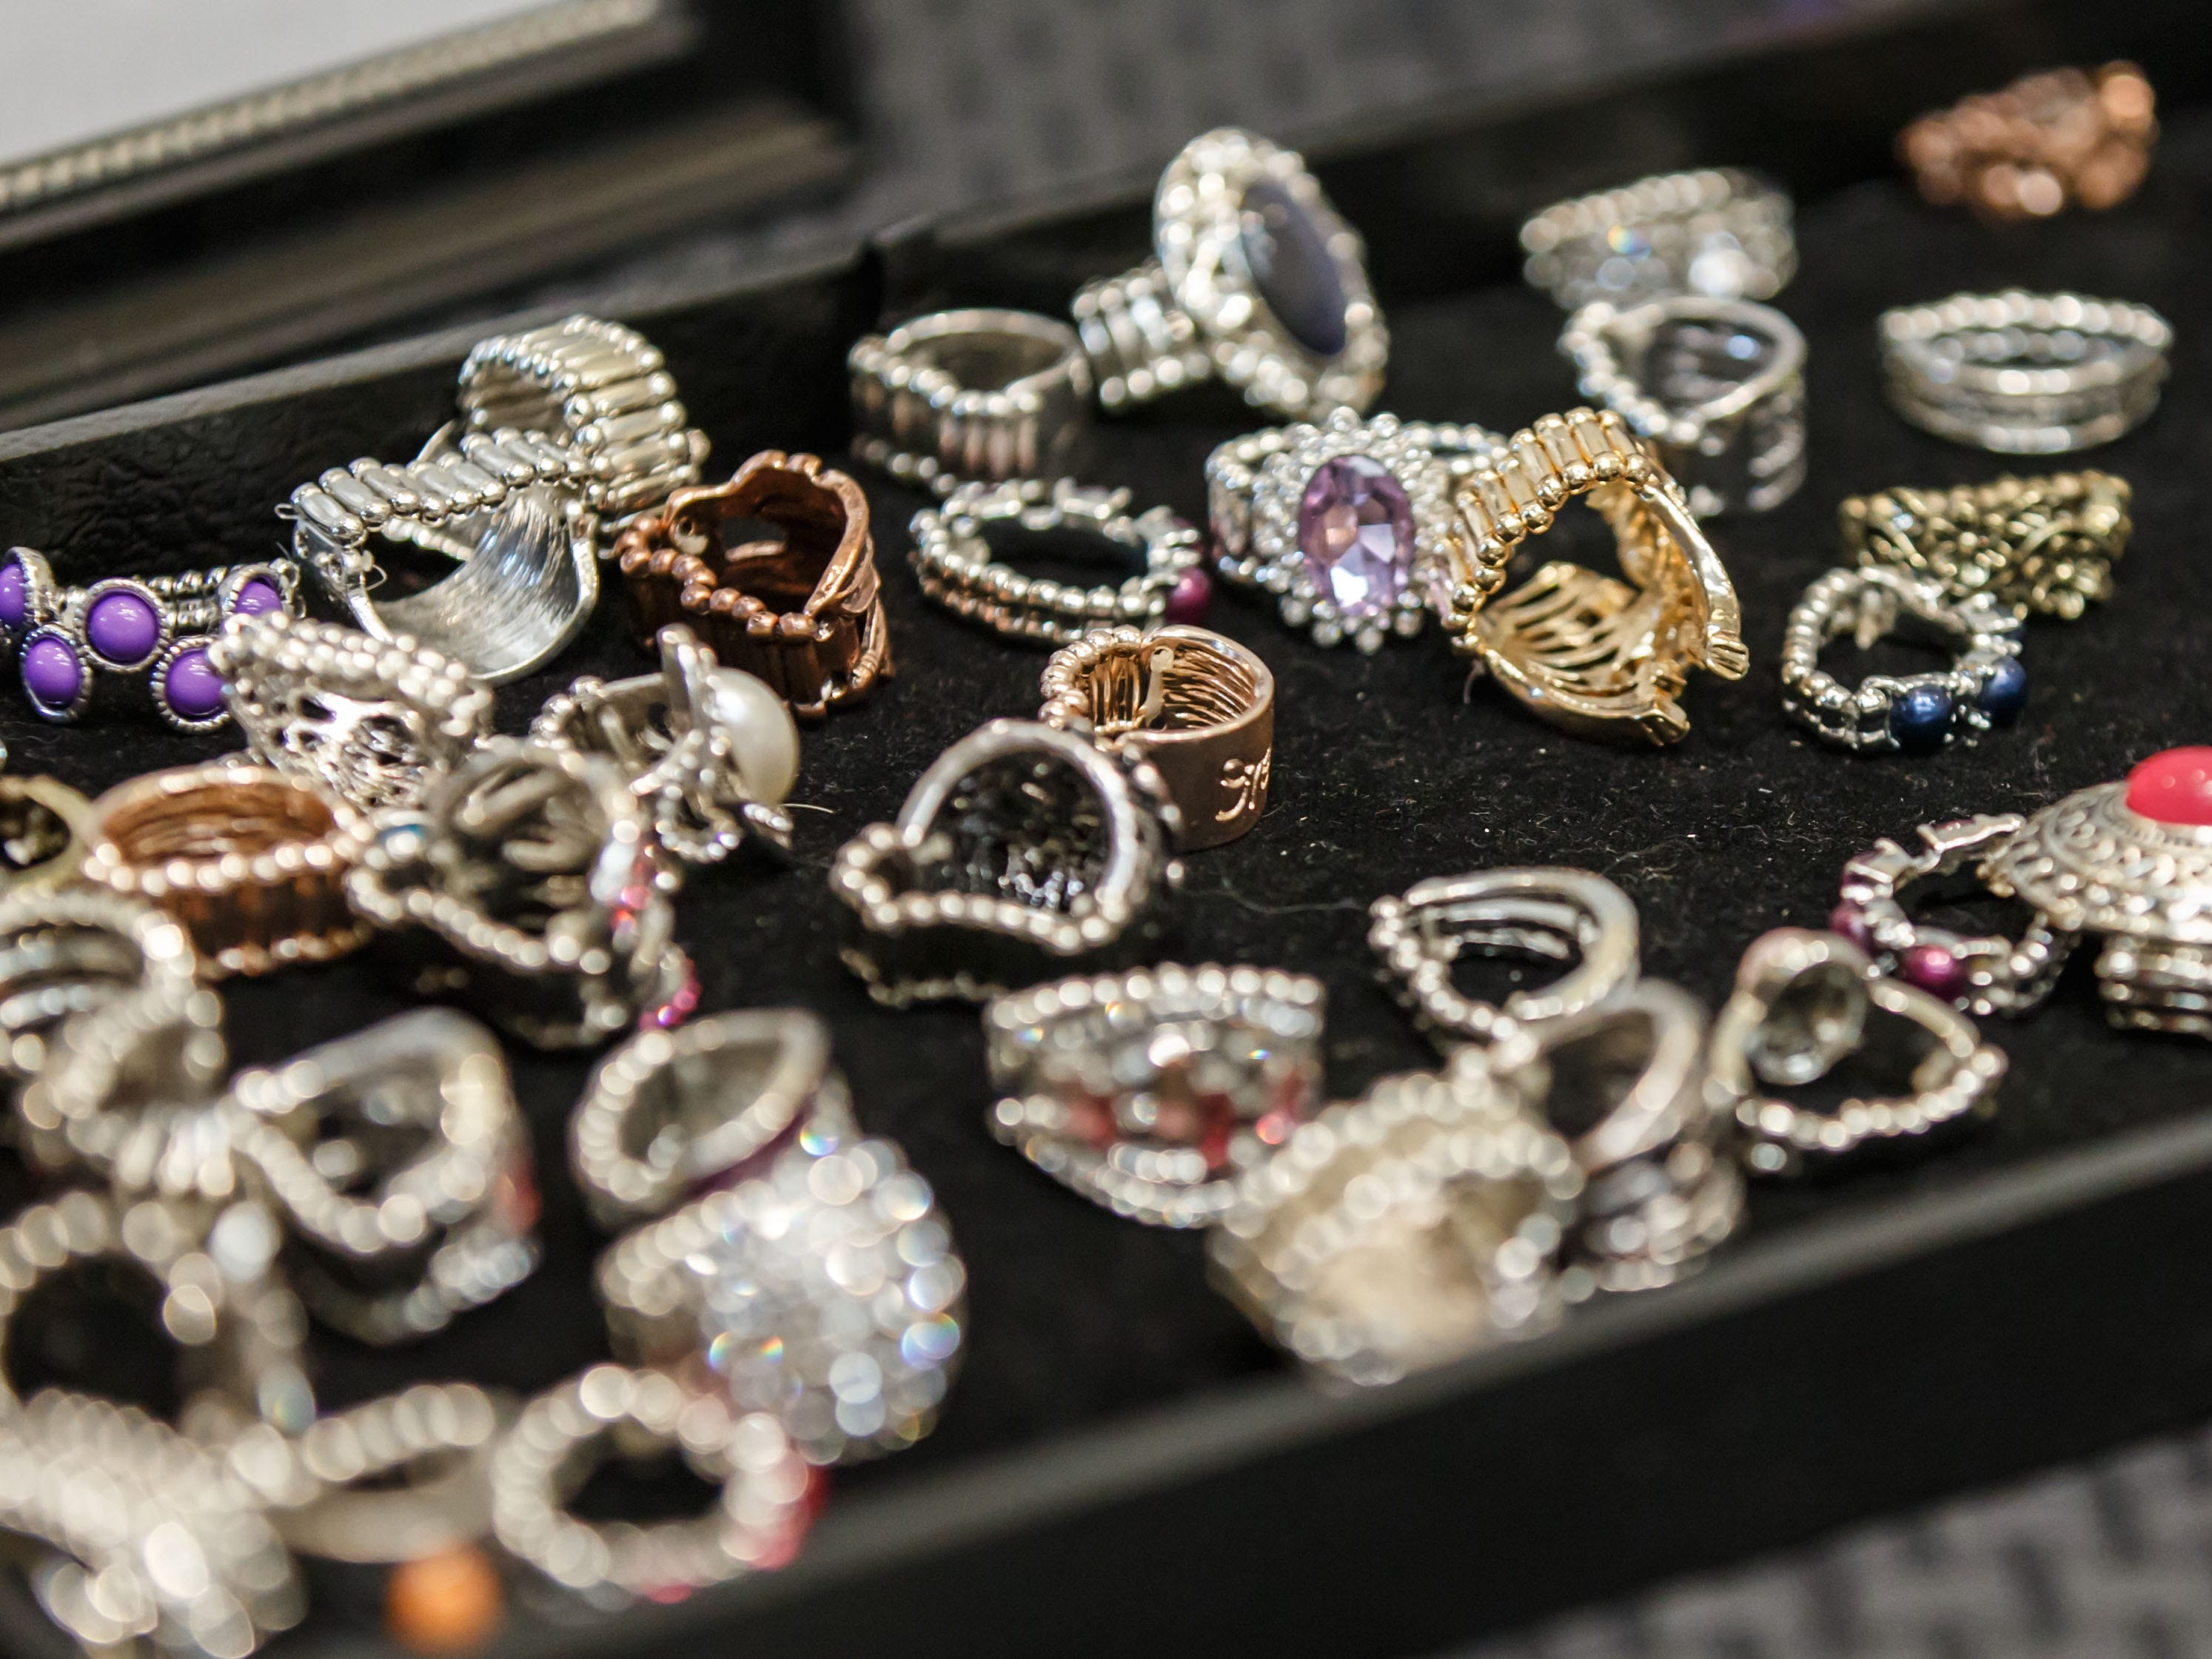 Jewelry, books, clothing and other items were on sale during the 2018 Holiday Bazaar at the Menomonee Falls Library on Saturday, Nov. 3. The annual event is a fundraising endeavor for the Friends of the Library, with a percentage of all sales supporting the group.